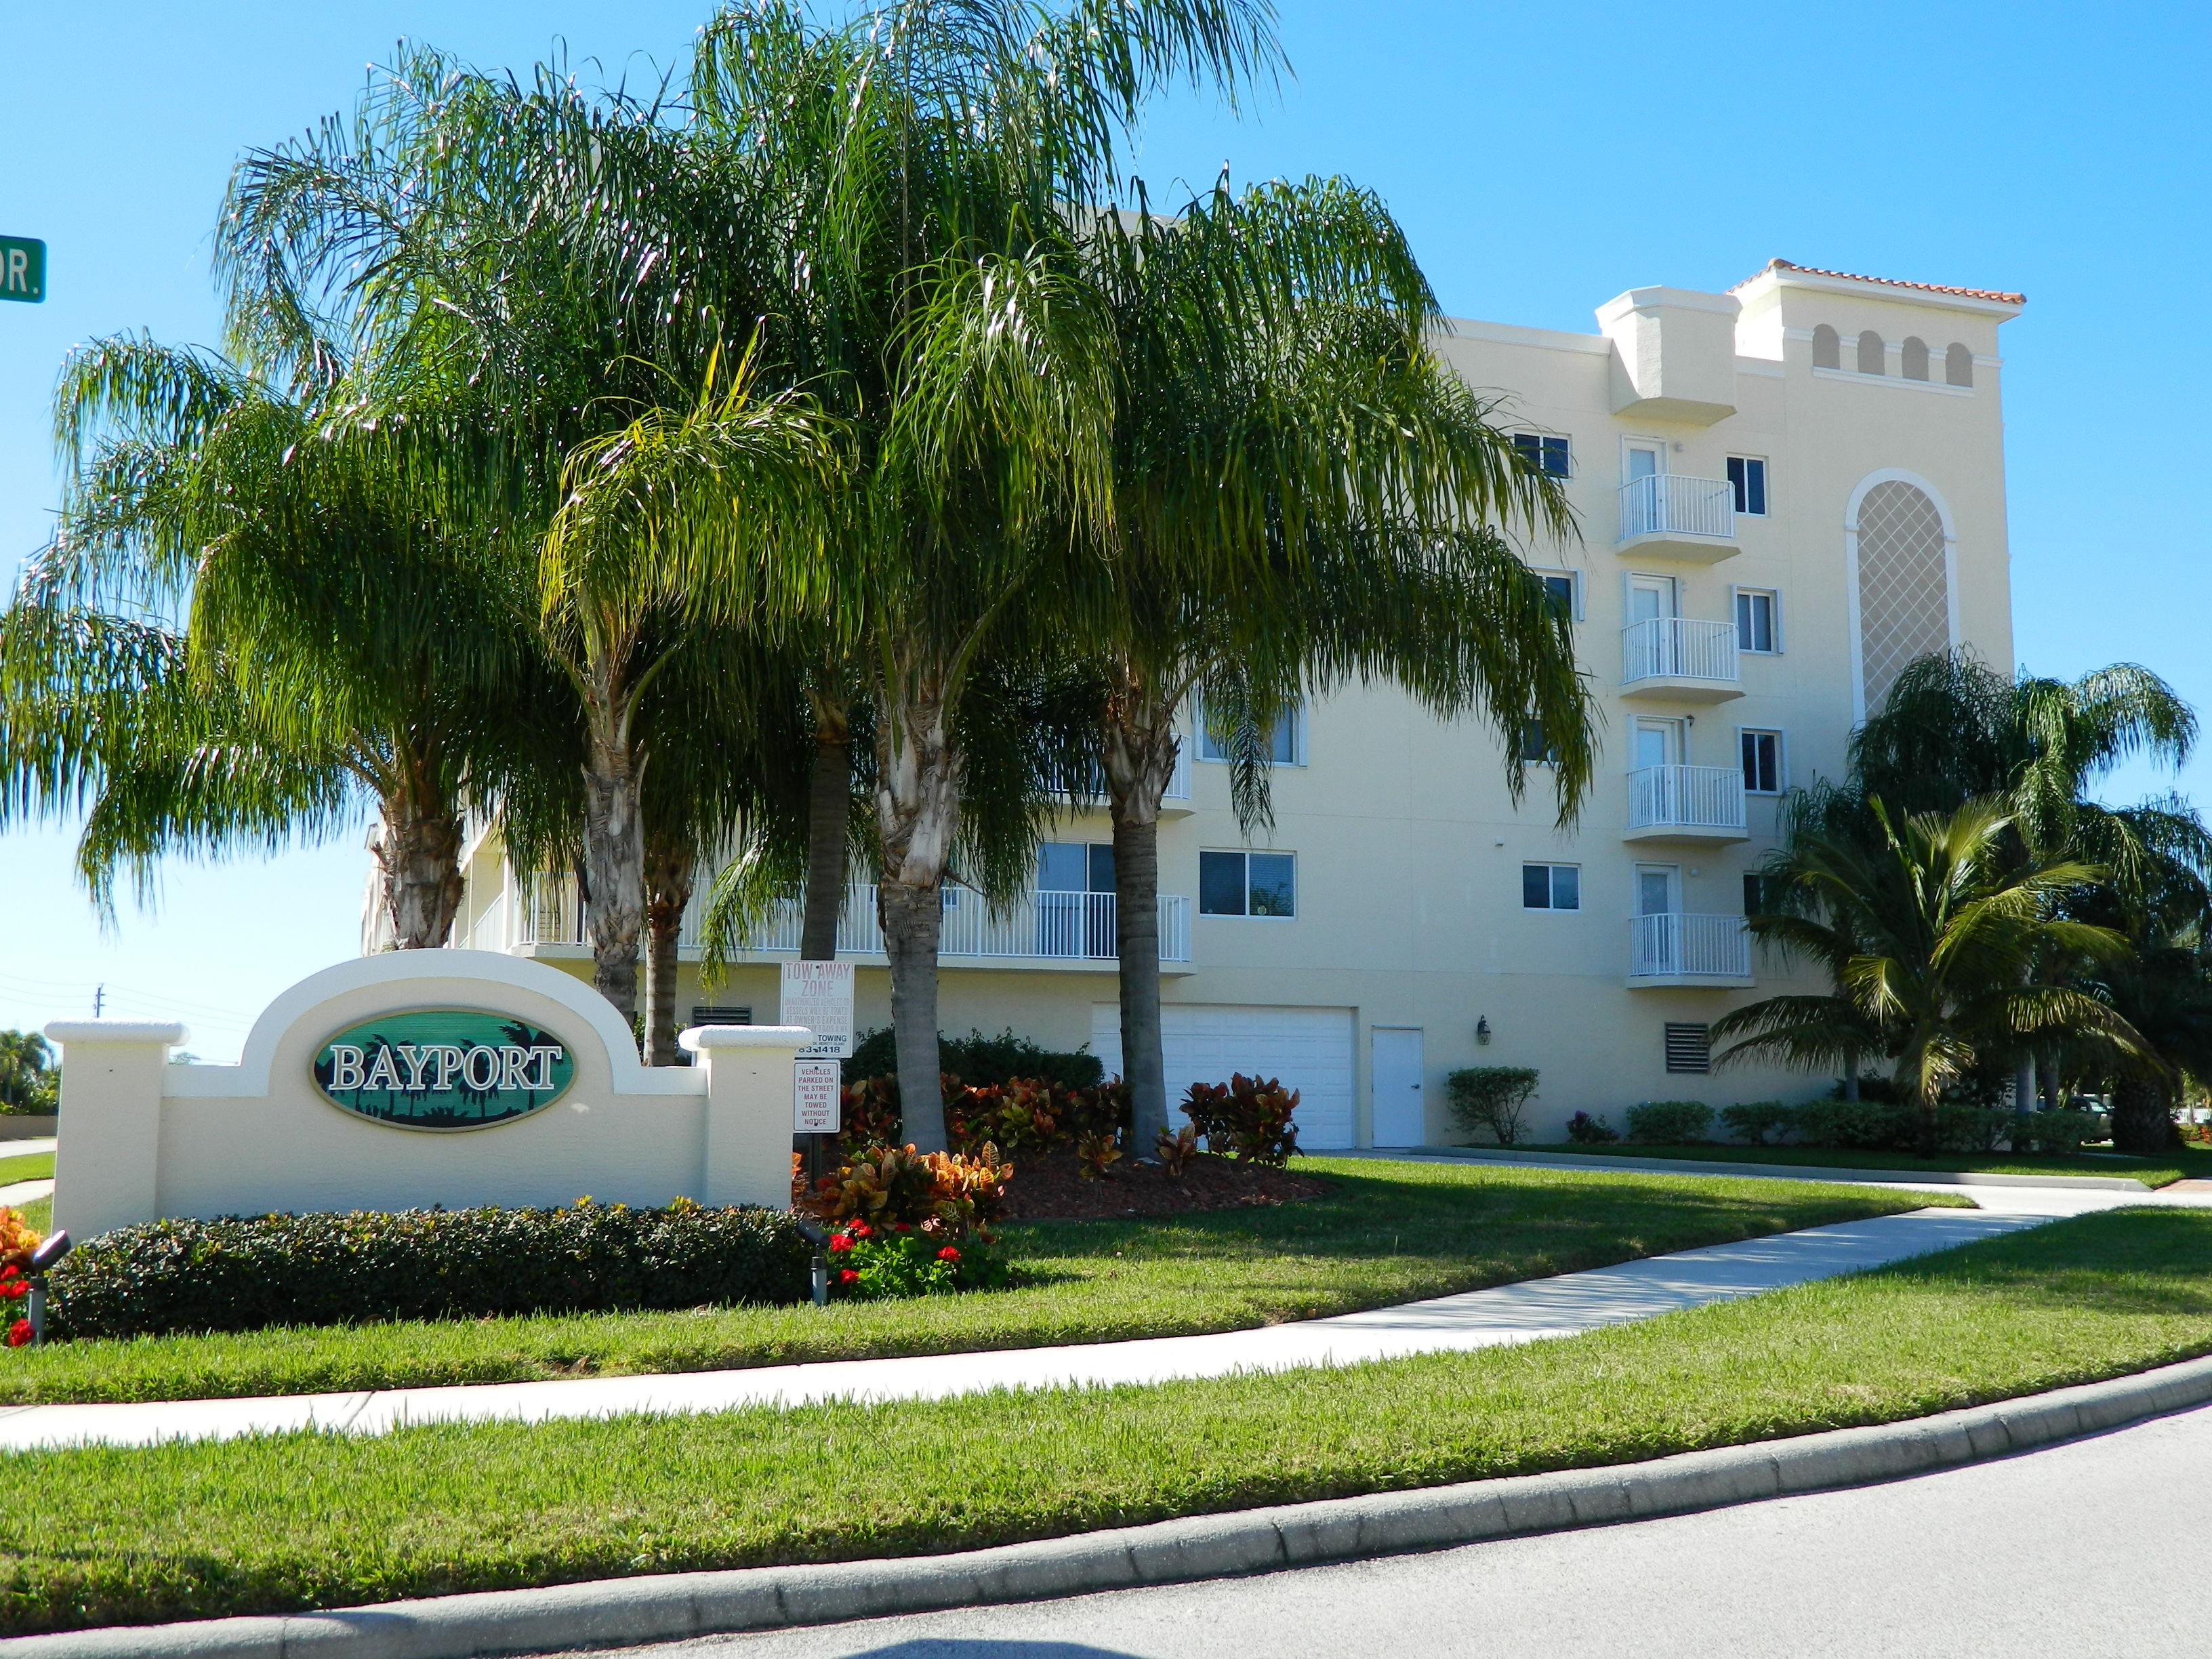 Bayport Condos In Cape Canaveral Fl View Units For Sale